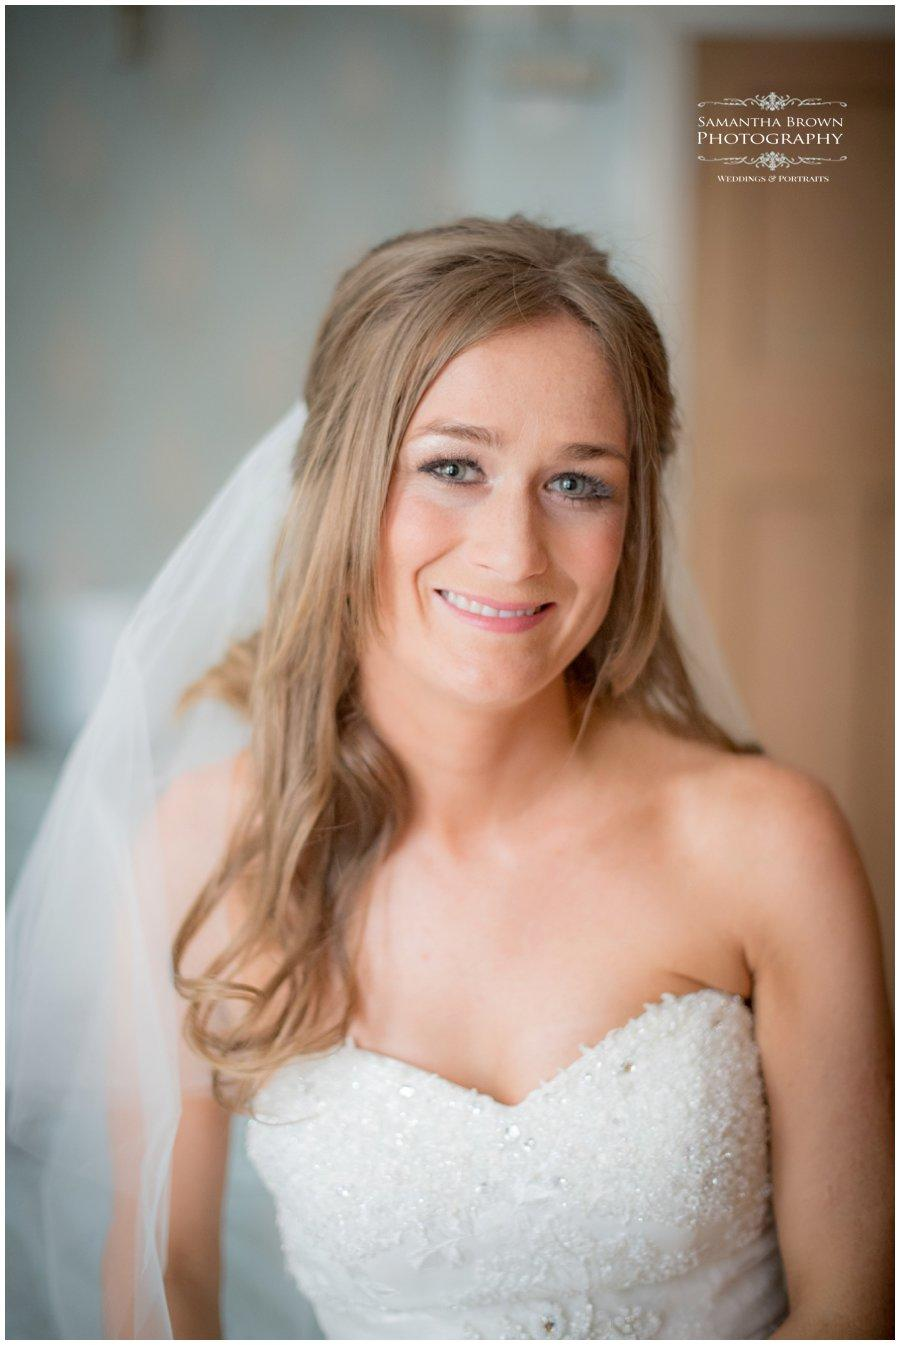 wedding-photography-liverpool-by-samantha-brown_0163